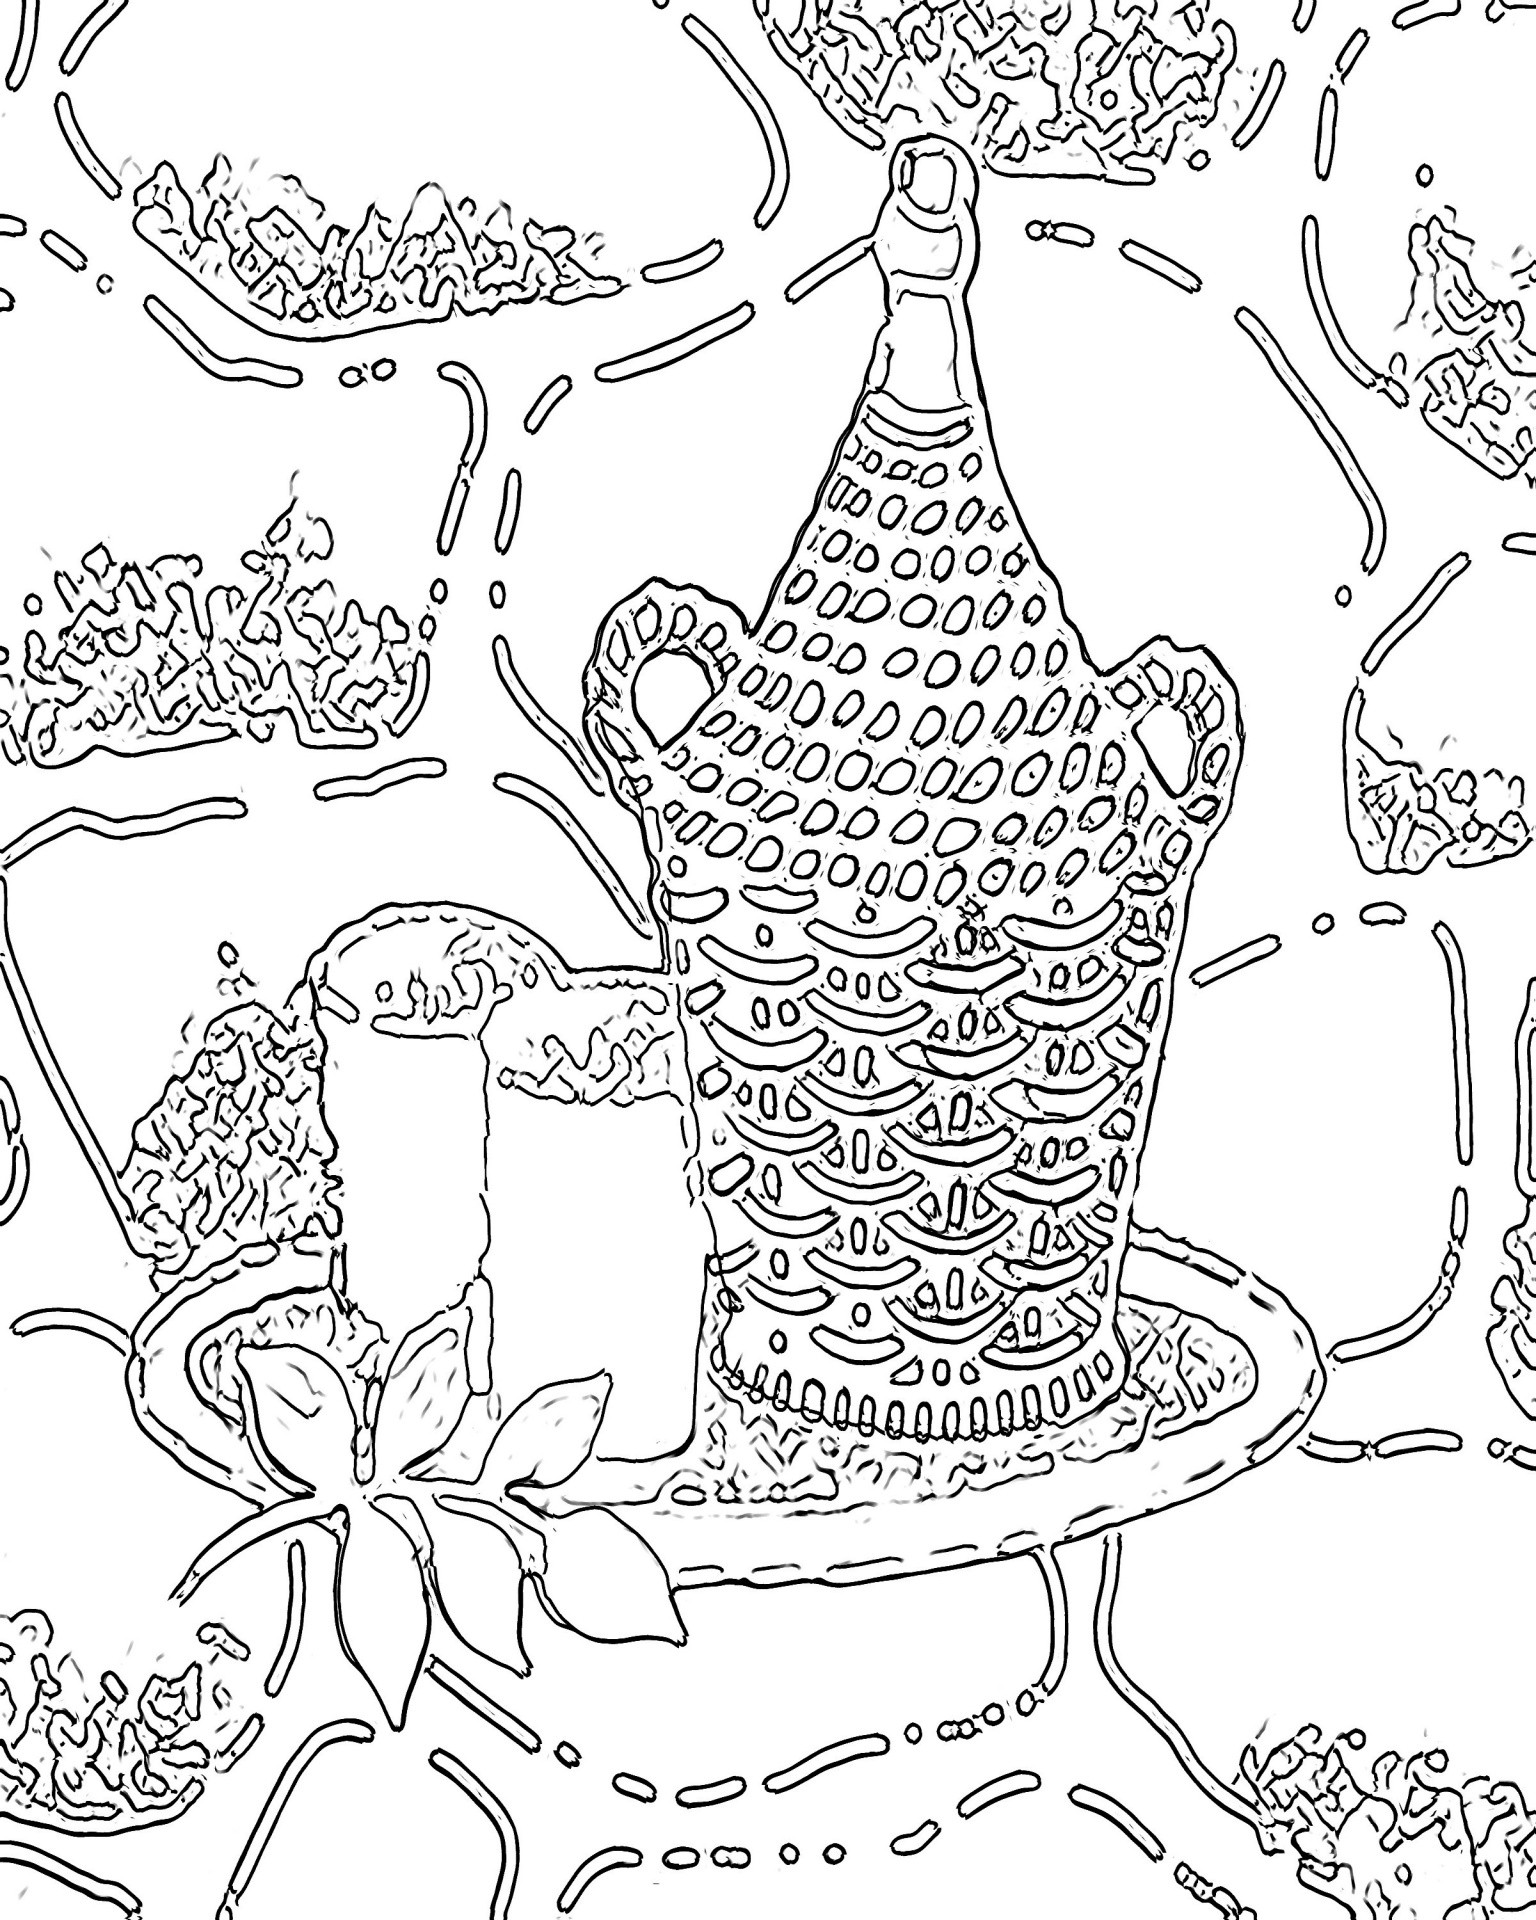 Outer Space Coloring Pages For Adults  Outer Space Free Printable Adult Coloring Page Printable